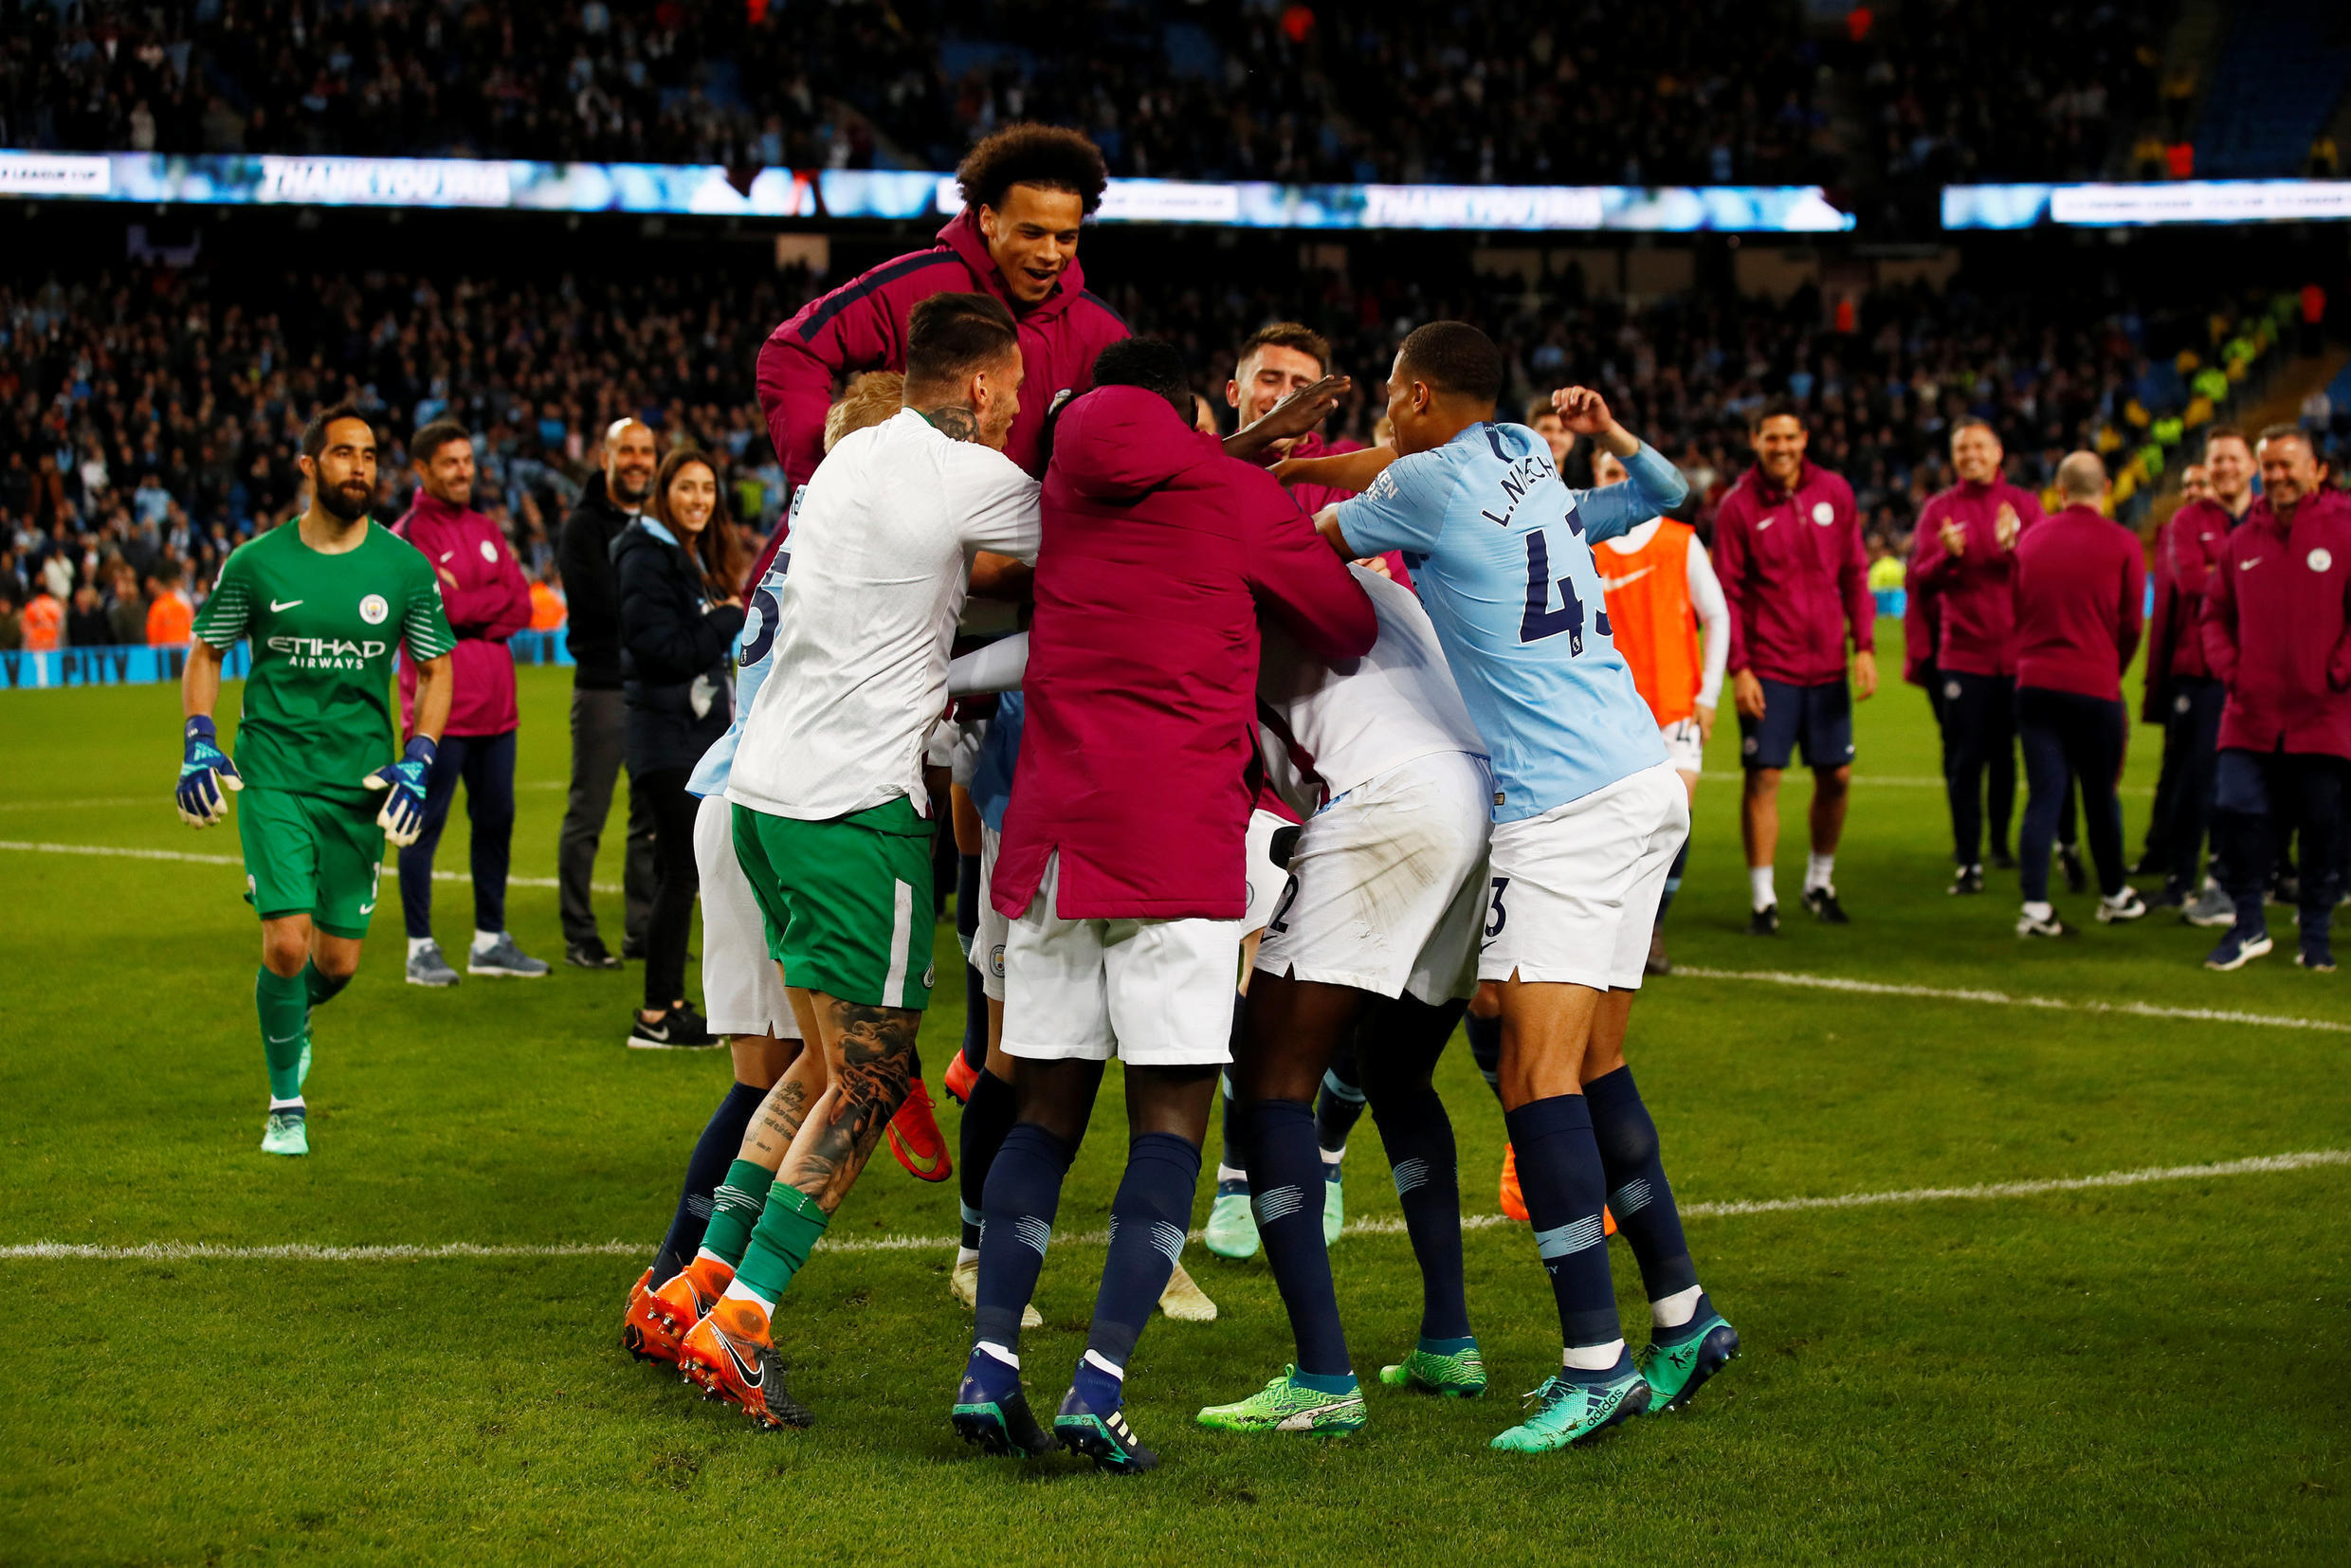 Manchester City's Leroy Sane and team mates hug Yaya Touré during a ceremony after their match against Brighton & Hove Albion on 9 May 2018.